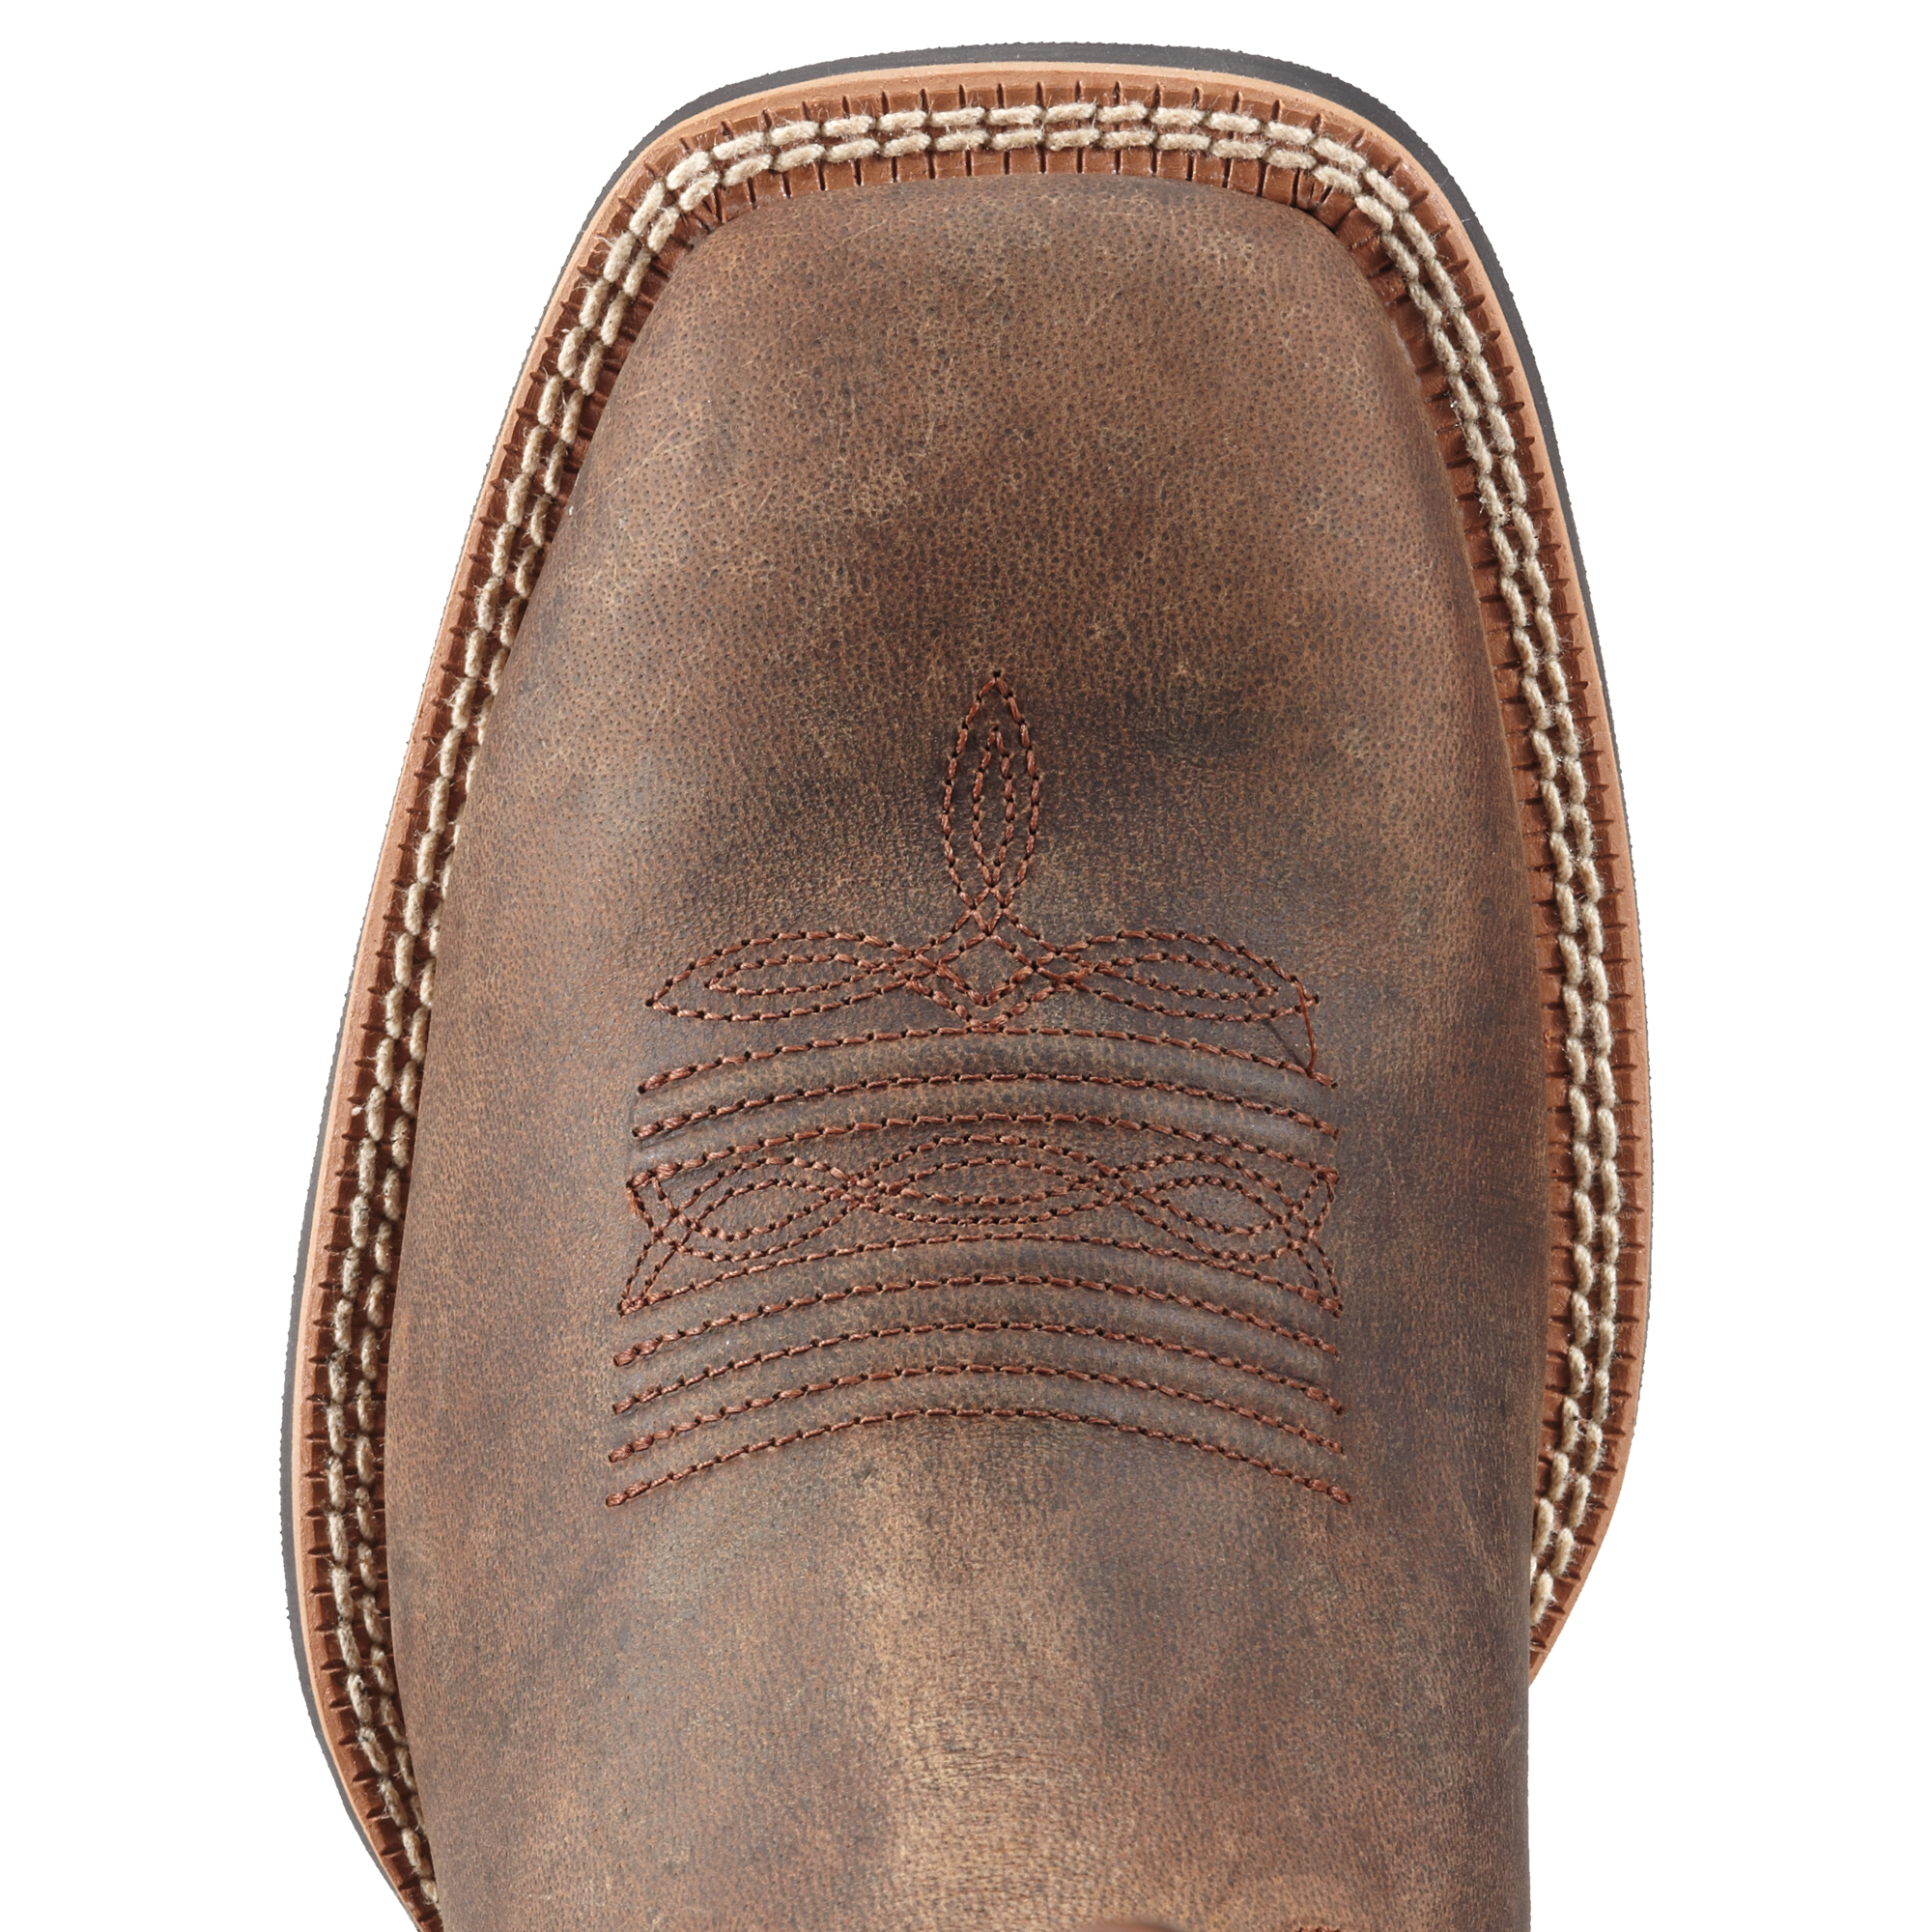 Ariat Boots On Sale sajLKoXc